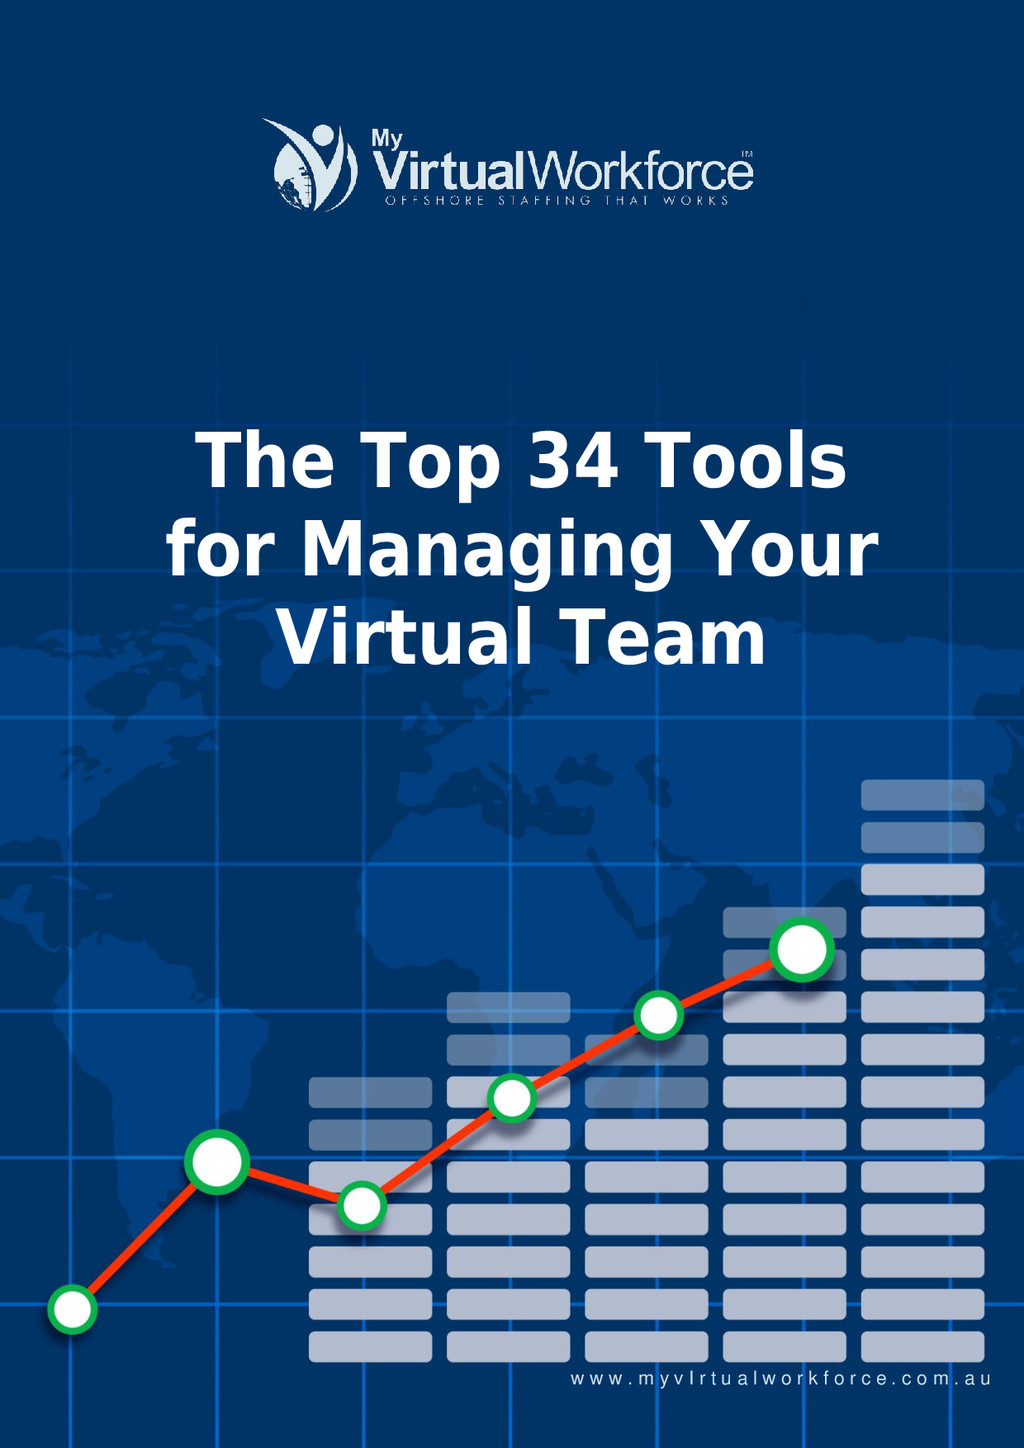 The Top 34 Tools for Managing Your Virtual Team...